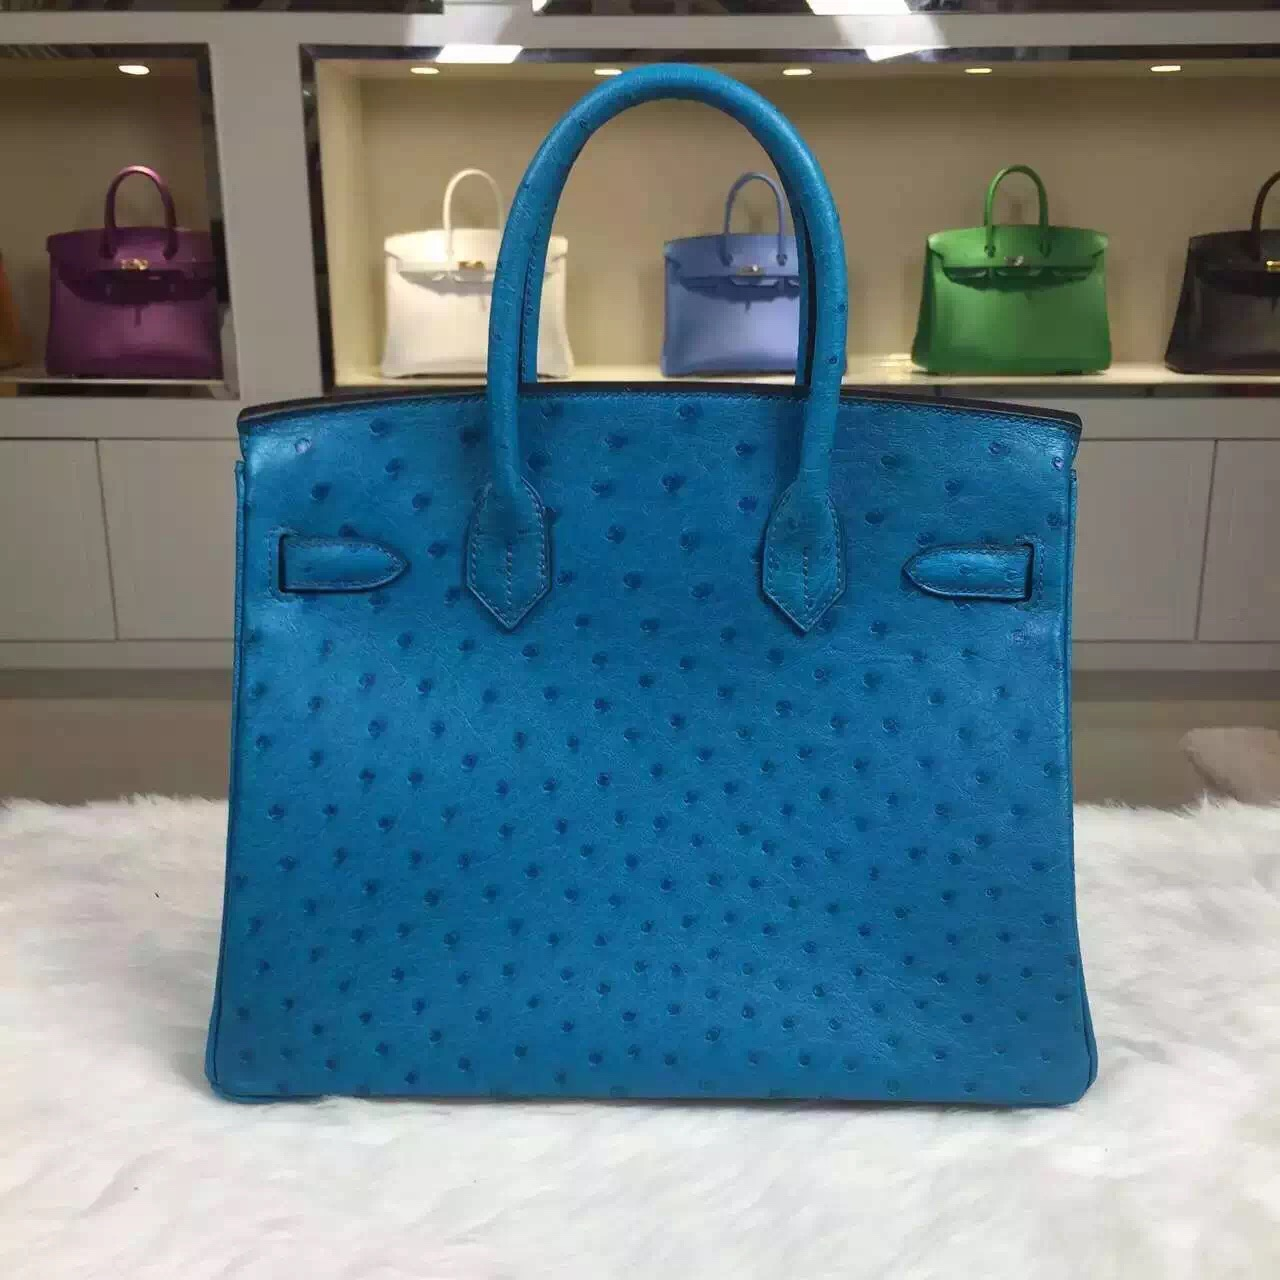 Fashion Hermes 7B Turquoise Blue France Ostrich Leather Birkin Bag 30cm Silver Hardware